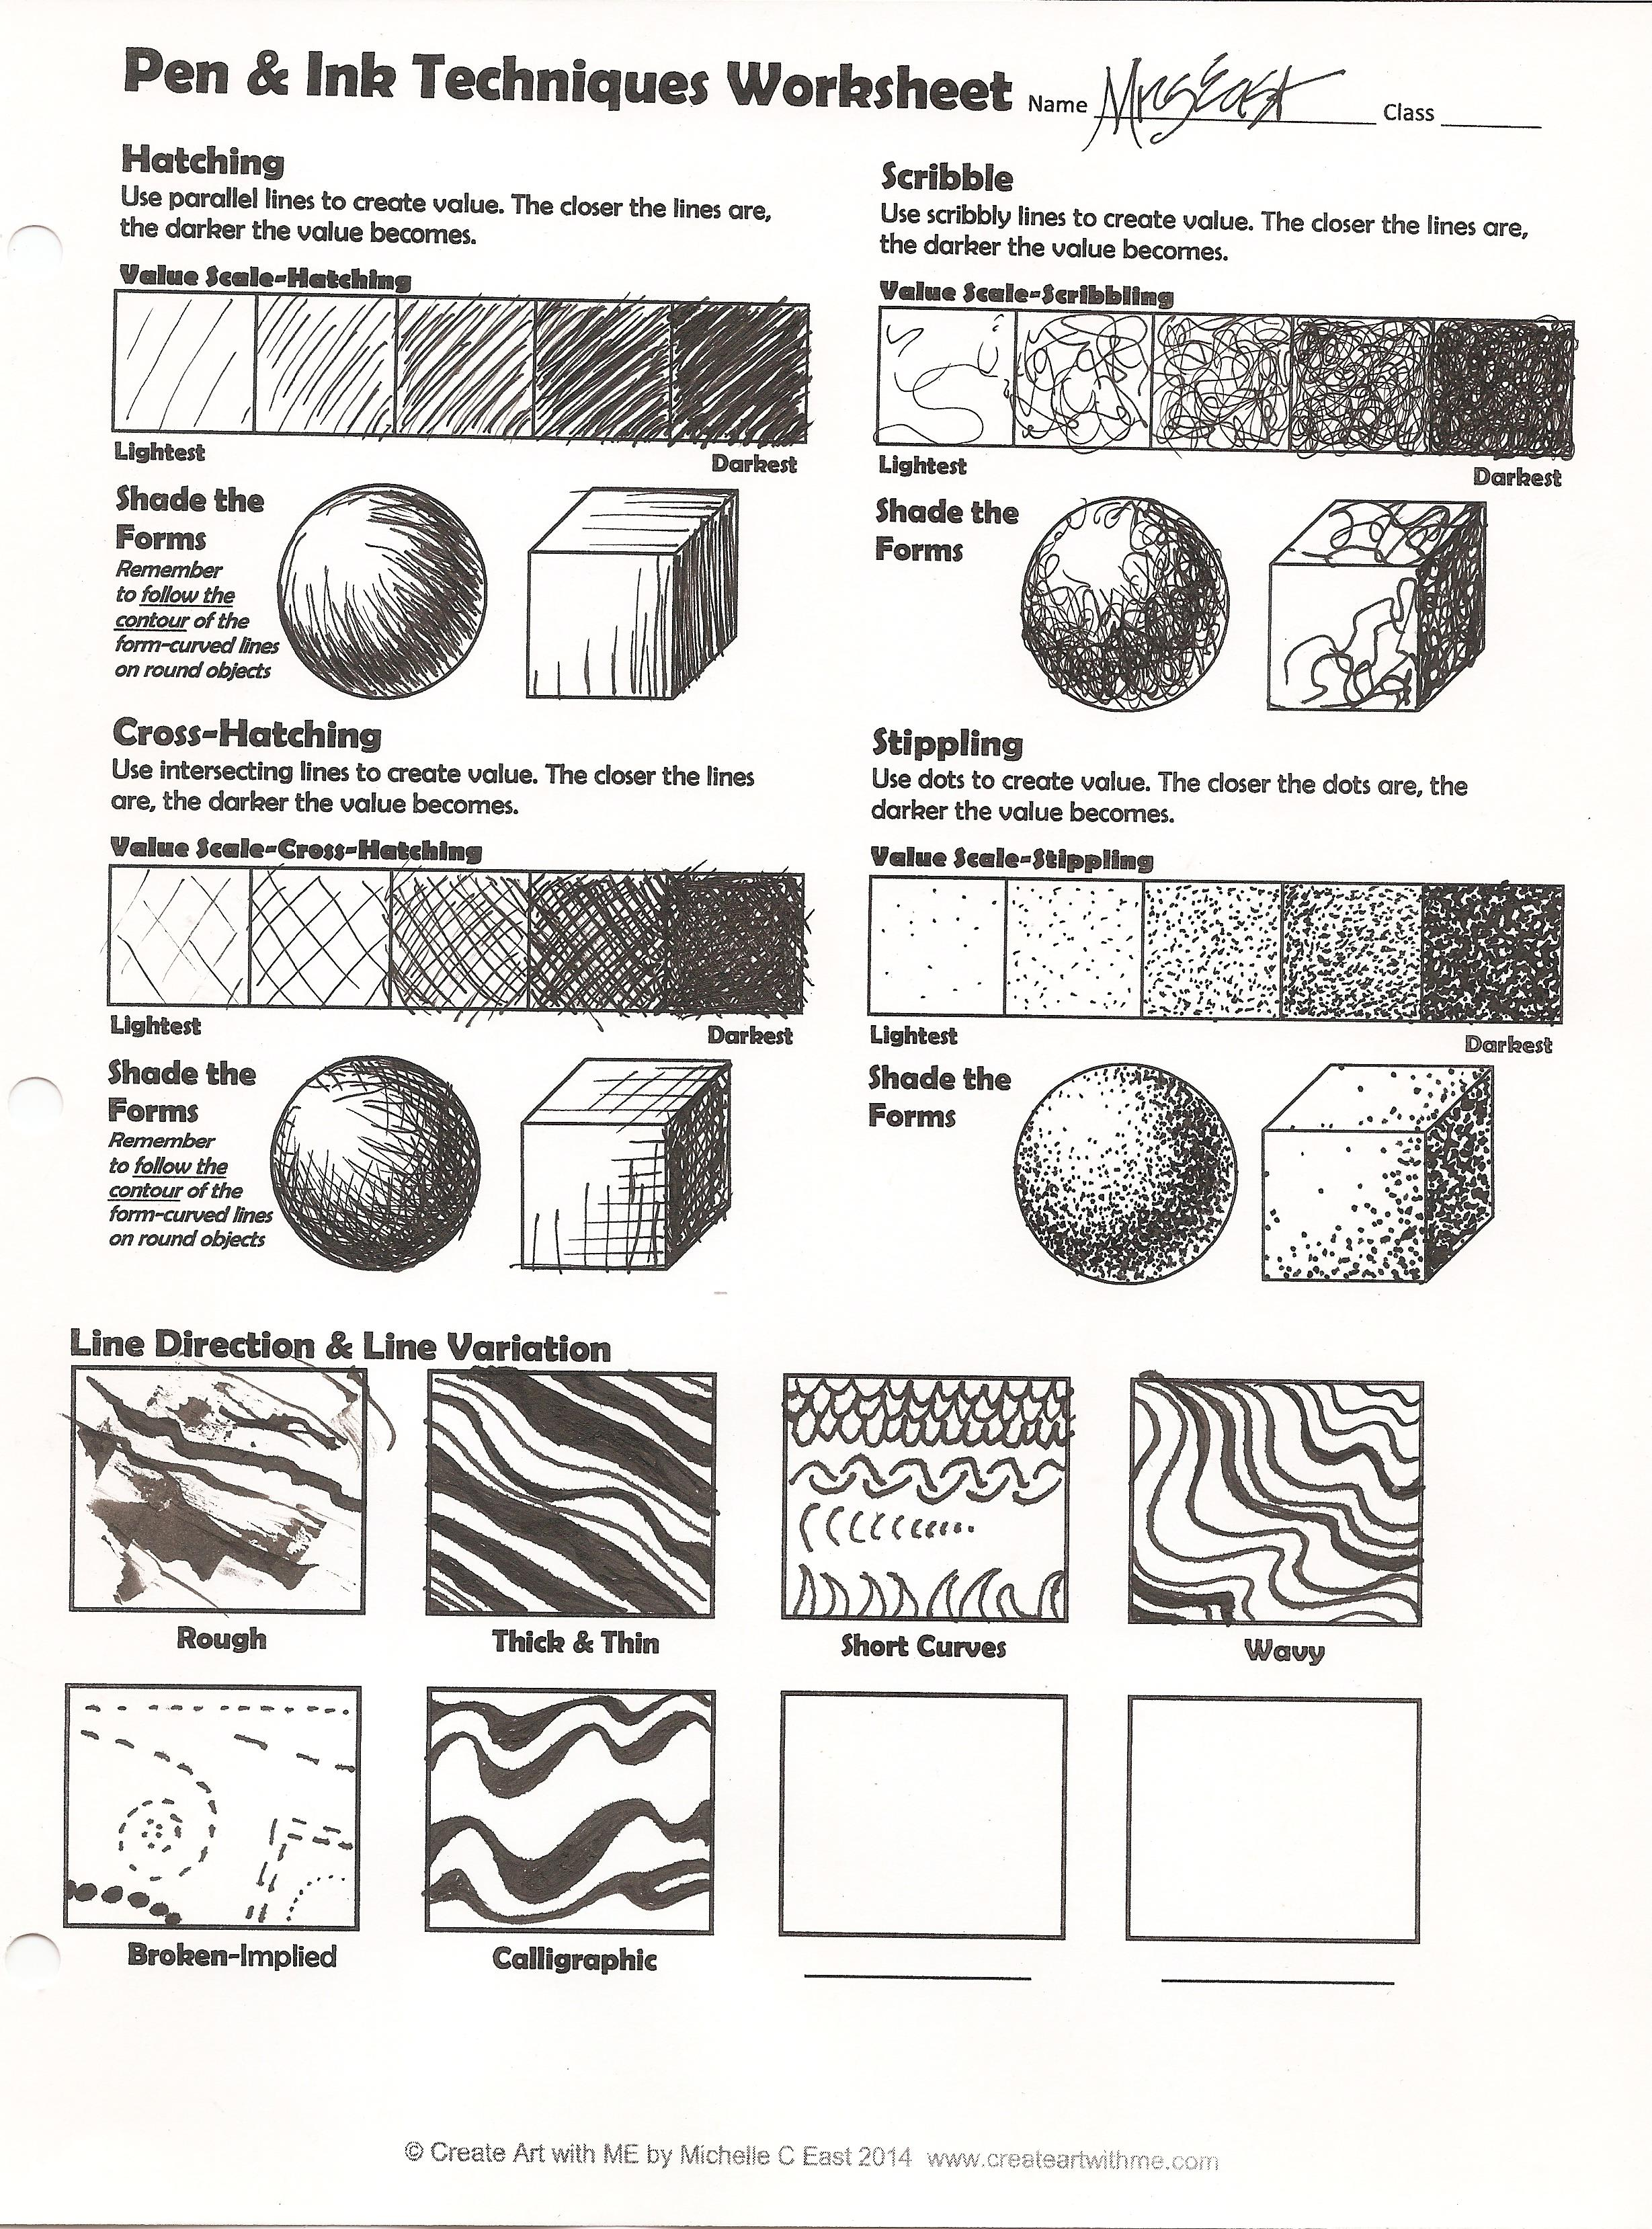 pen ink techniques lesson plan worksheet create art with me. Black Bedroom Furniture Sets. Home Design Ideas